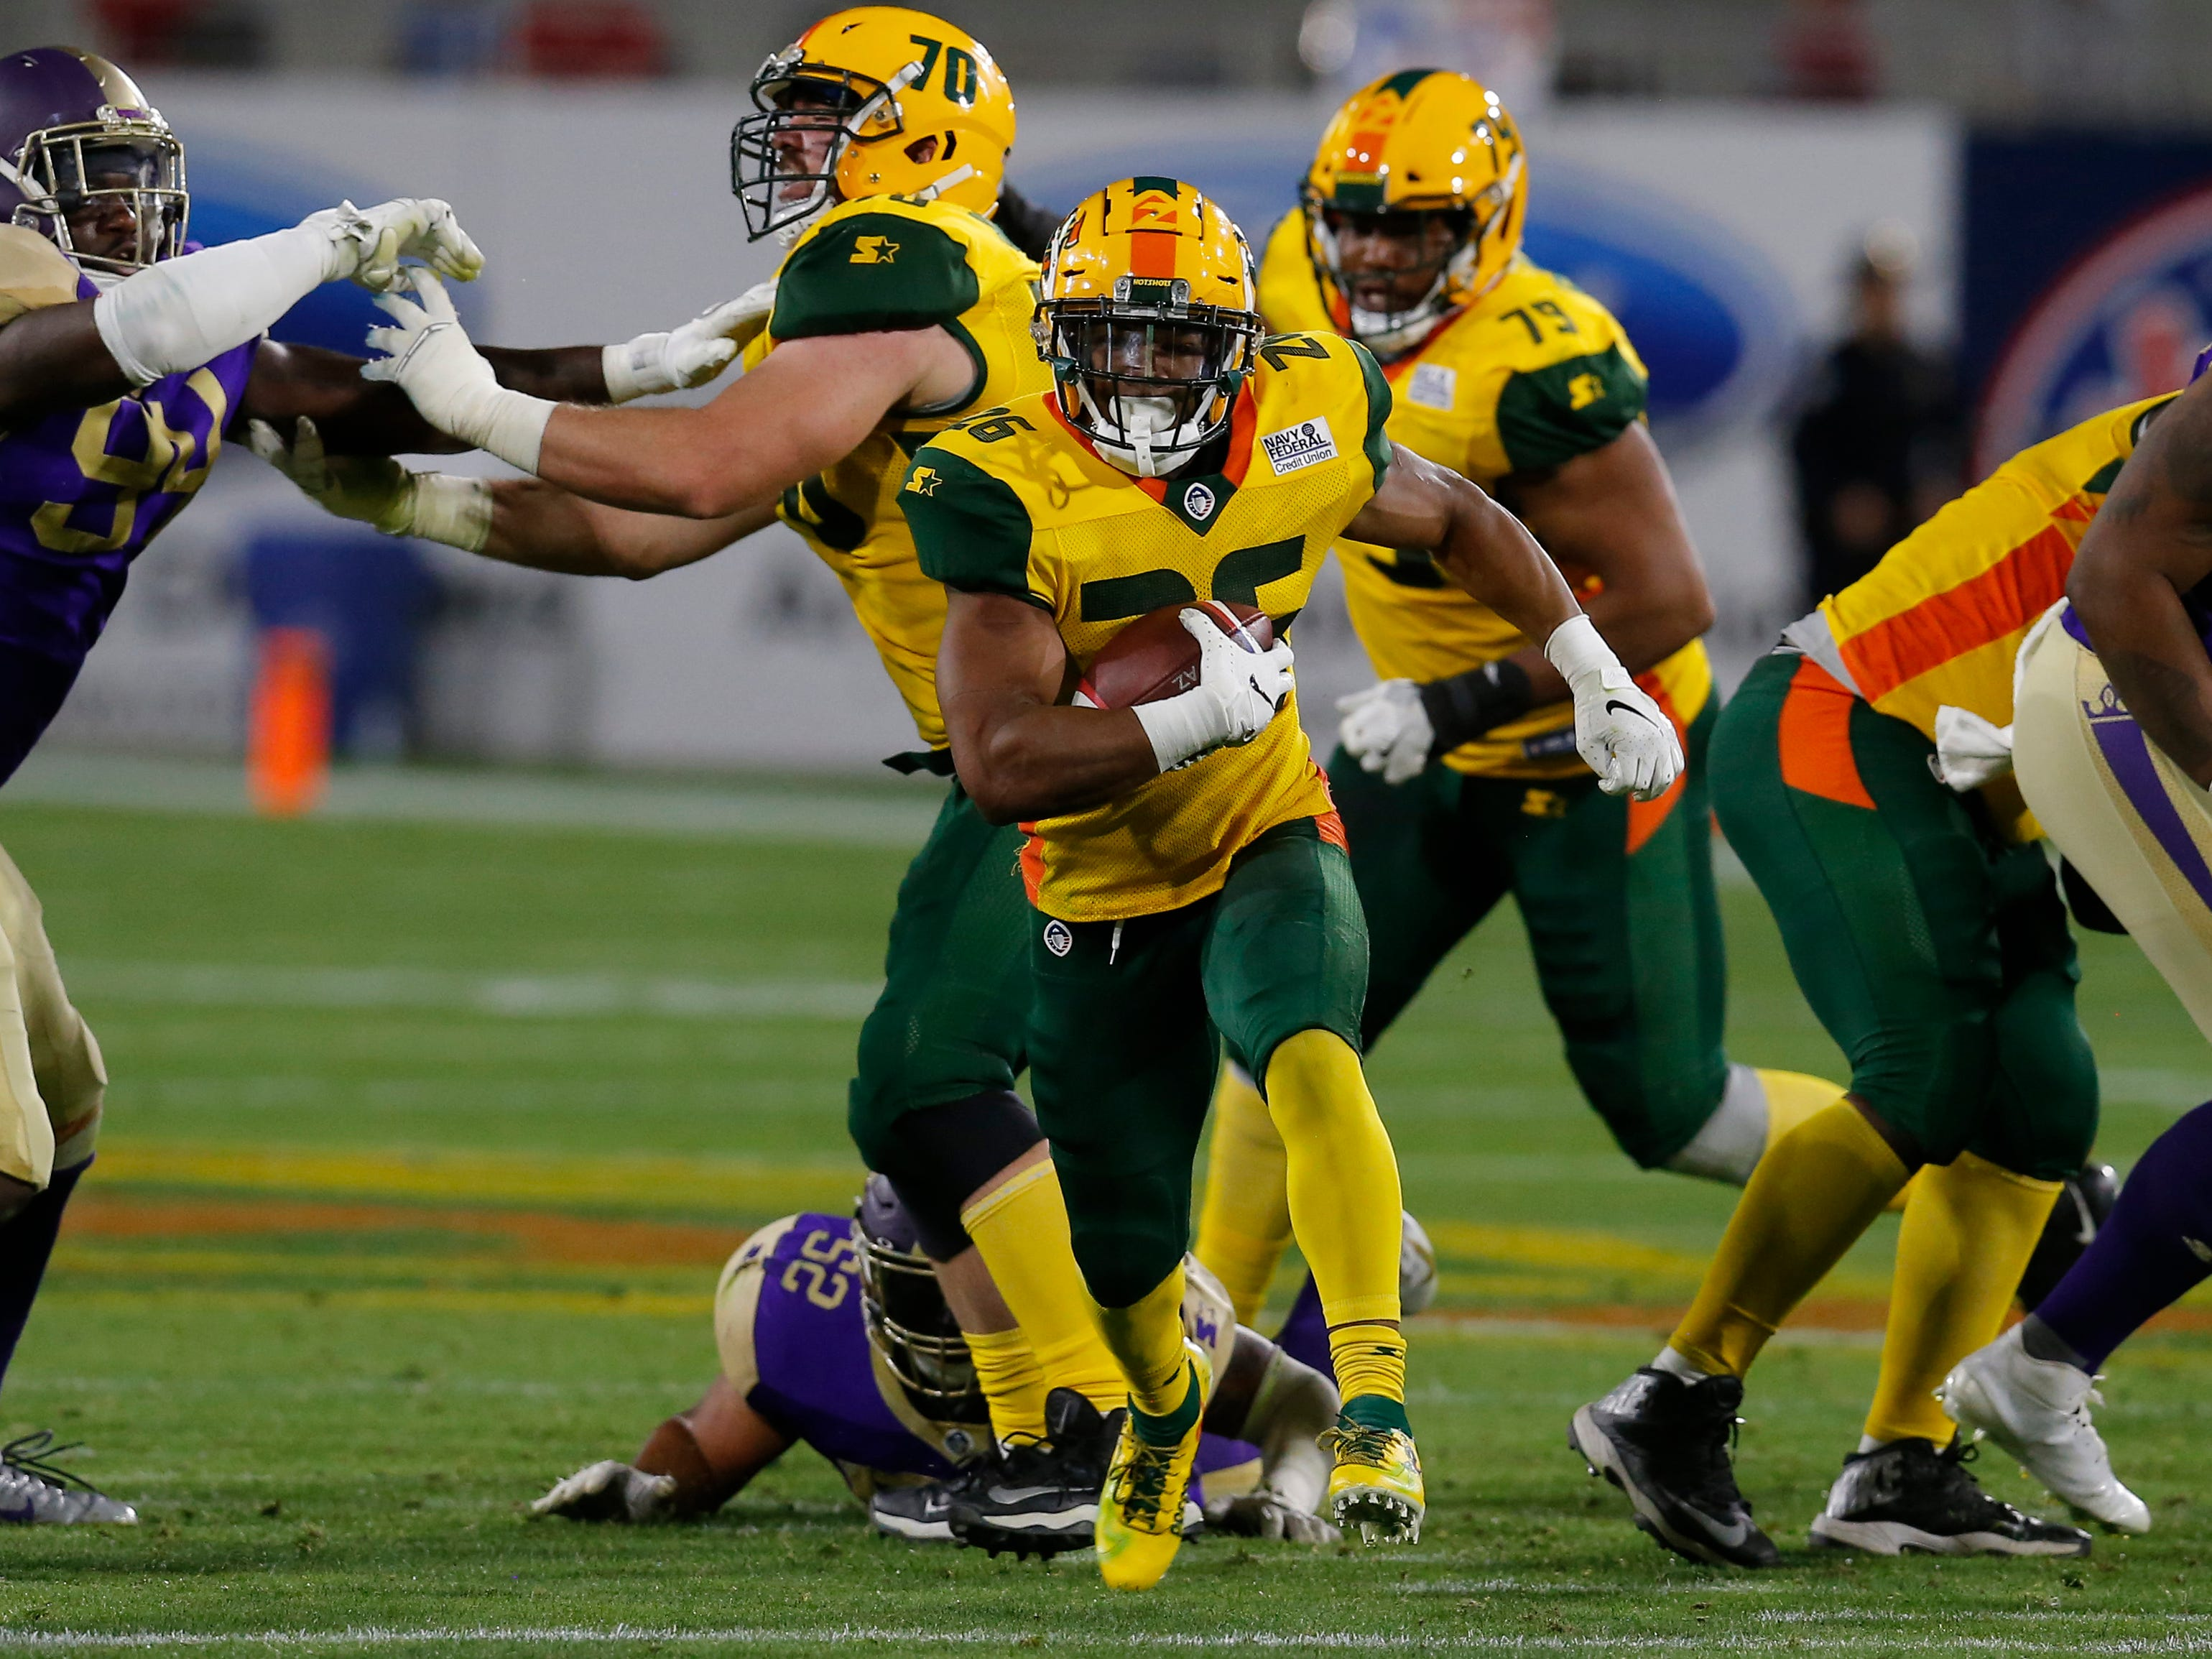 Arizona Hotshots running back Jhurell Pressley (26) runs for a firstdown against the Atlanta Legends in the second half during an AAF football game, Sunday, March 3, 2019, at Sun Devil Stadium in Phoenix.